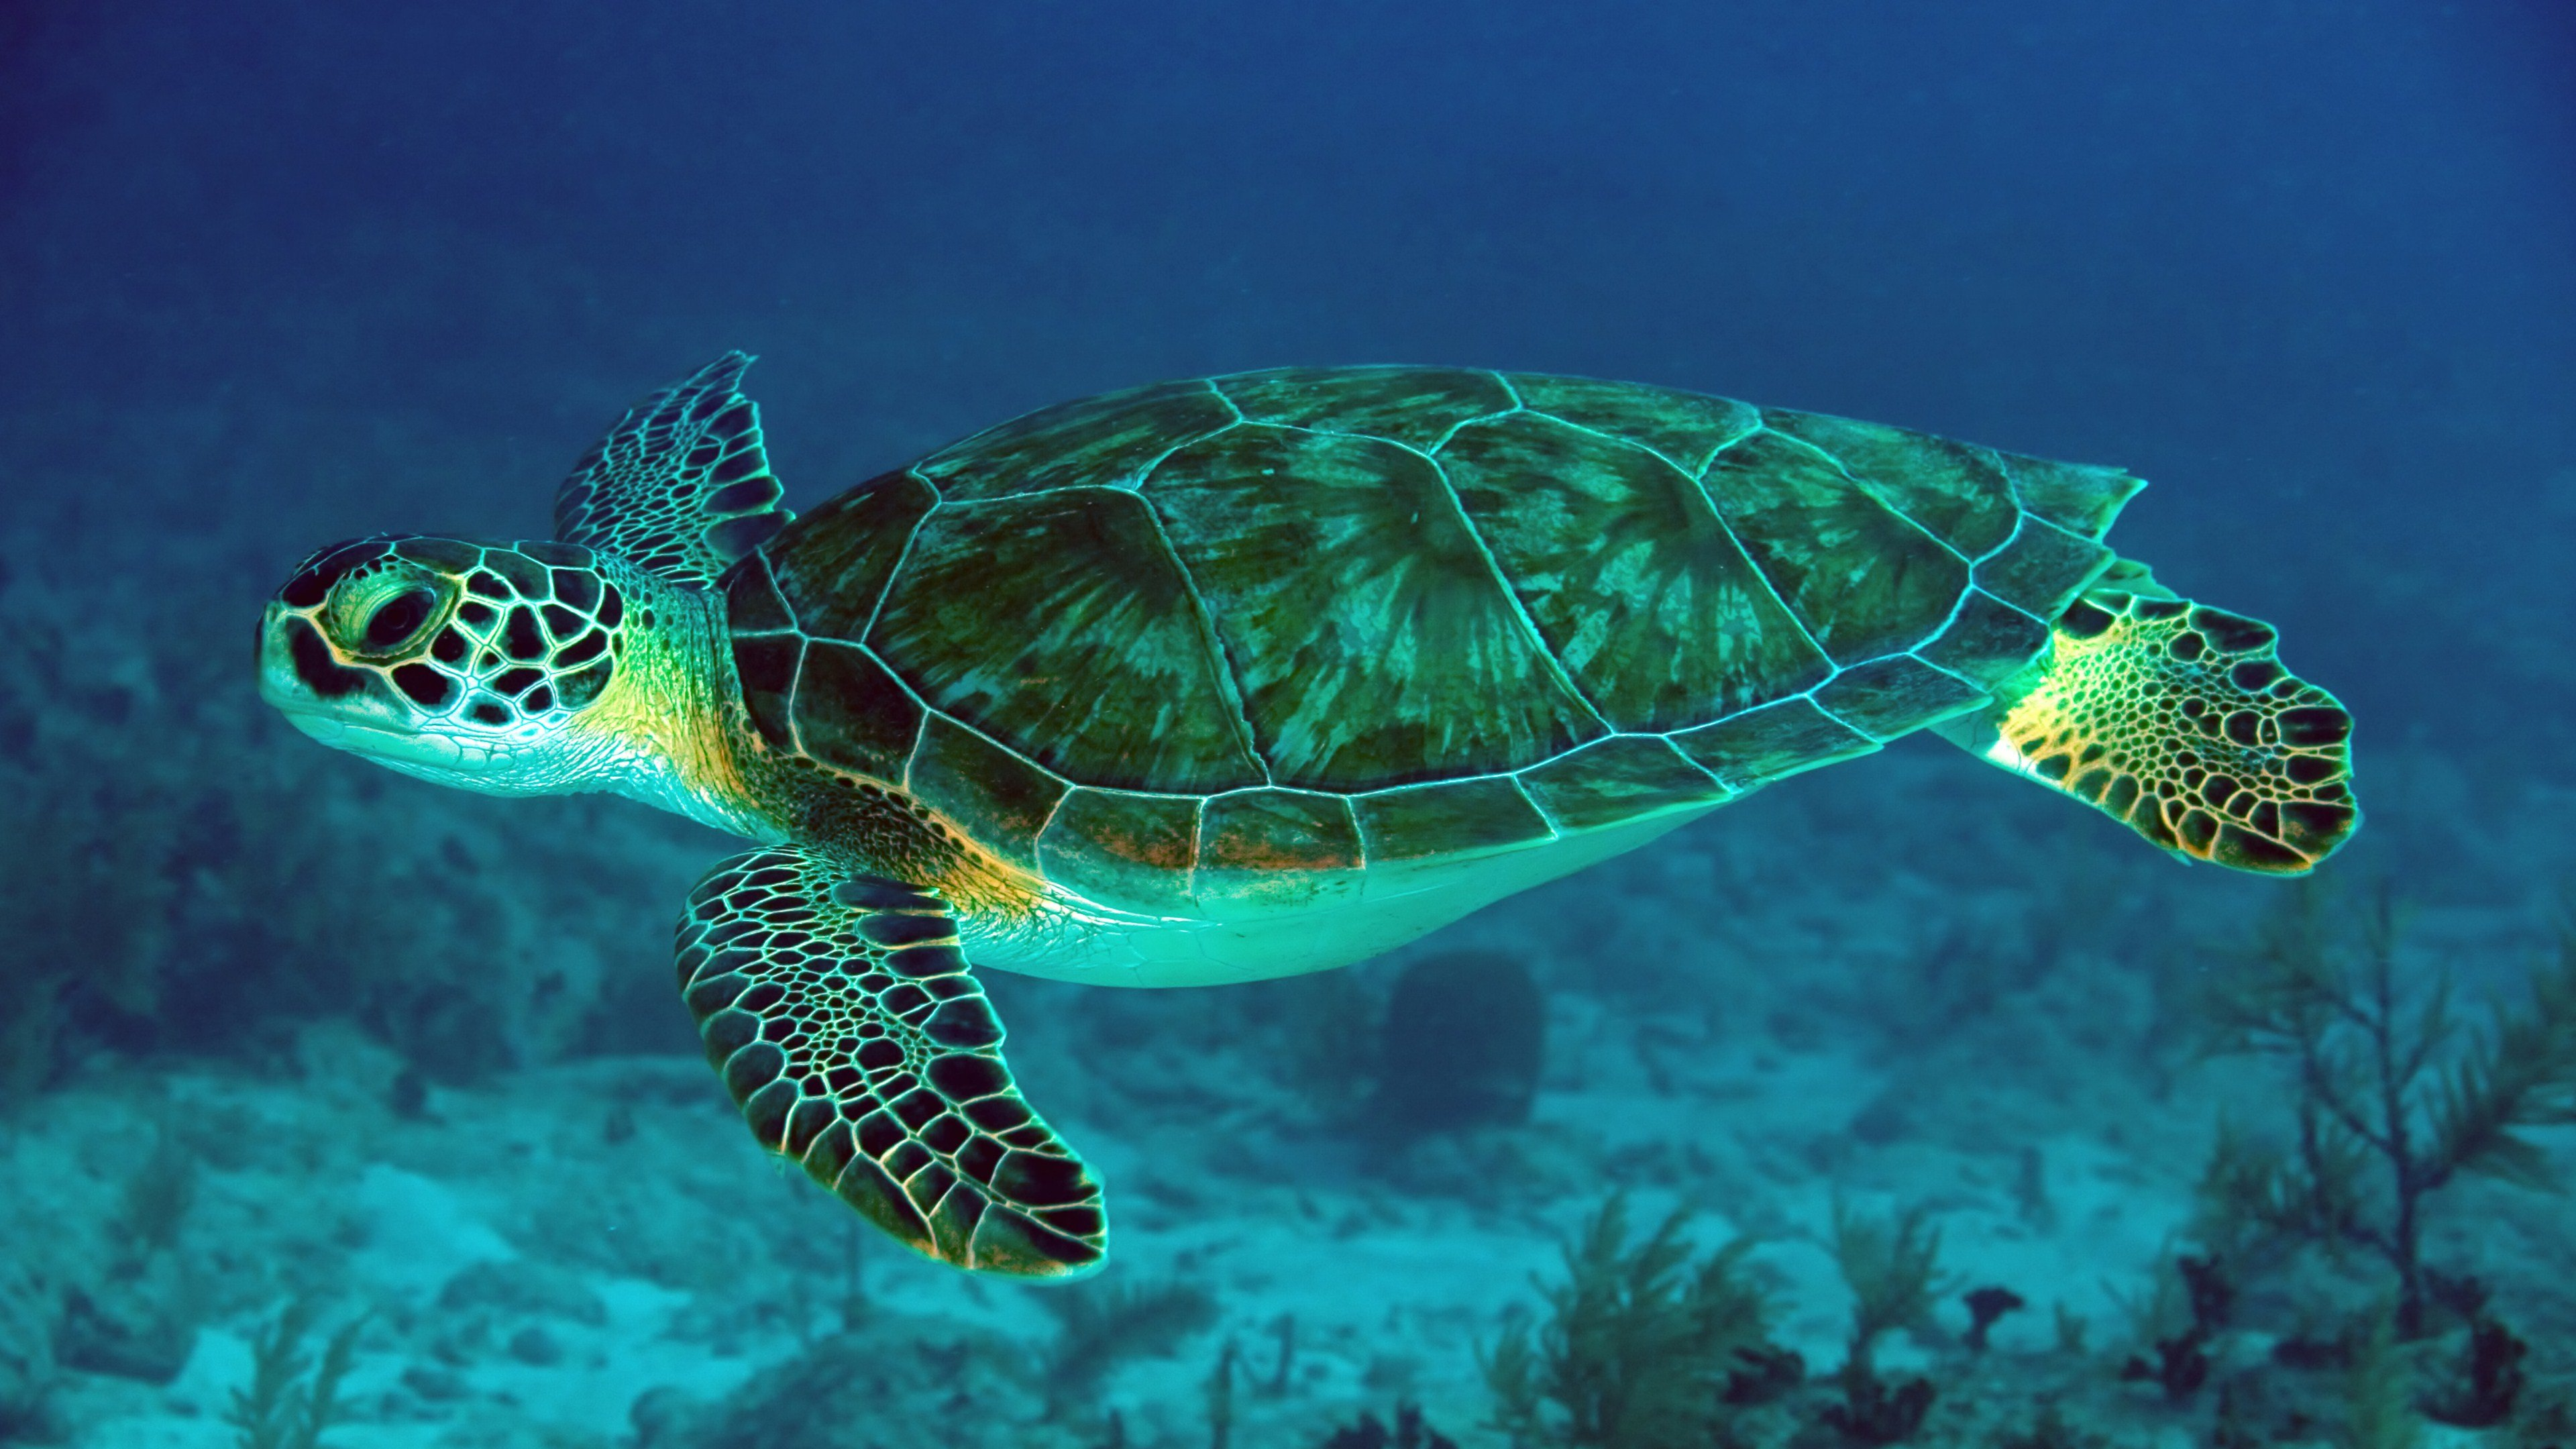 Best Sea Turtle wallpaper ID:150743 for High Resolution hd 4k computer